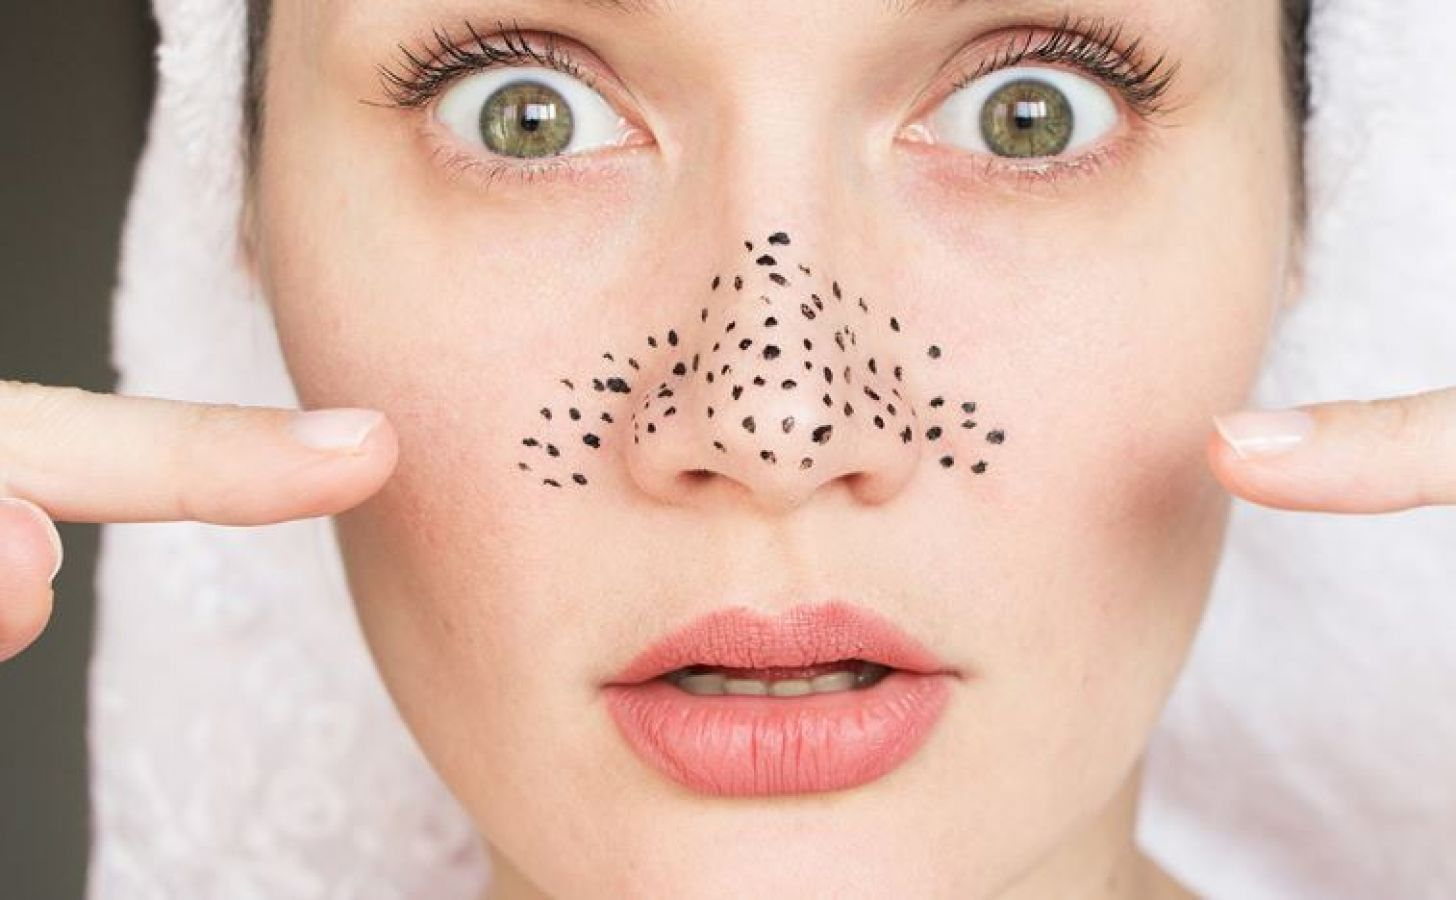 Diy Get Rid Of Blackheads With Toothpaste News Track Live